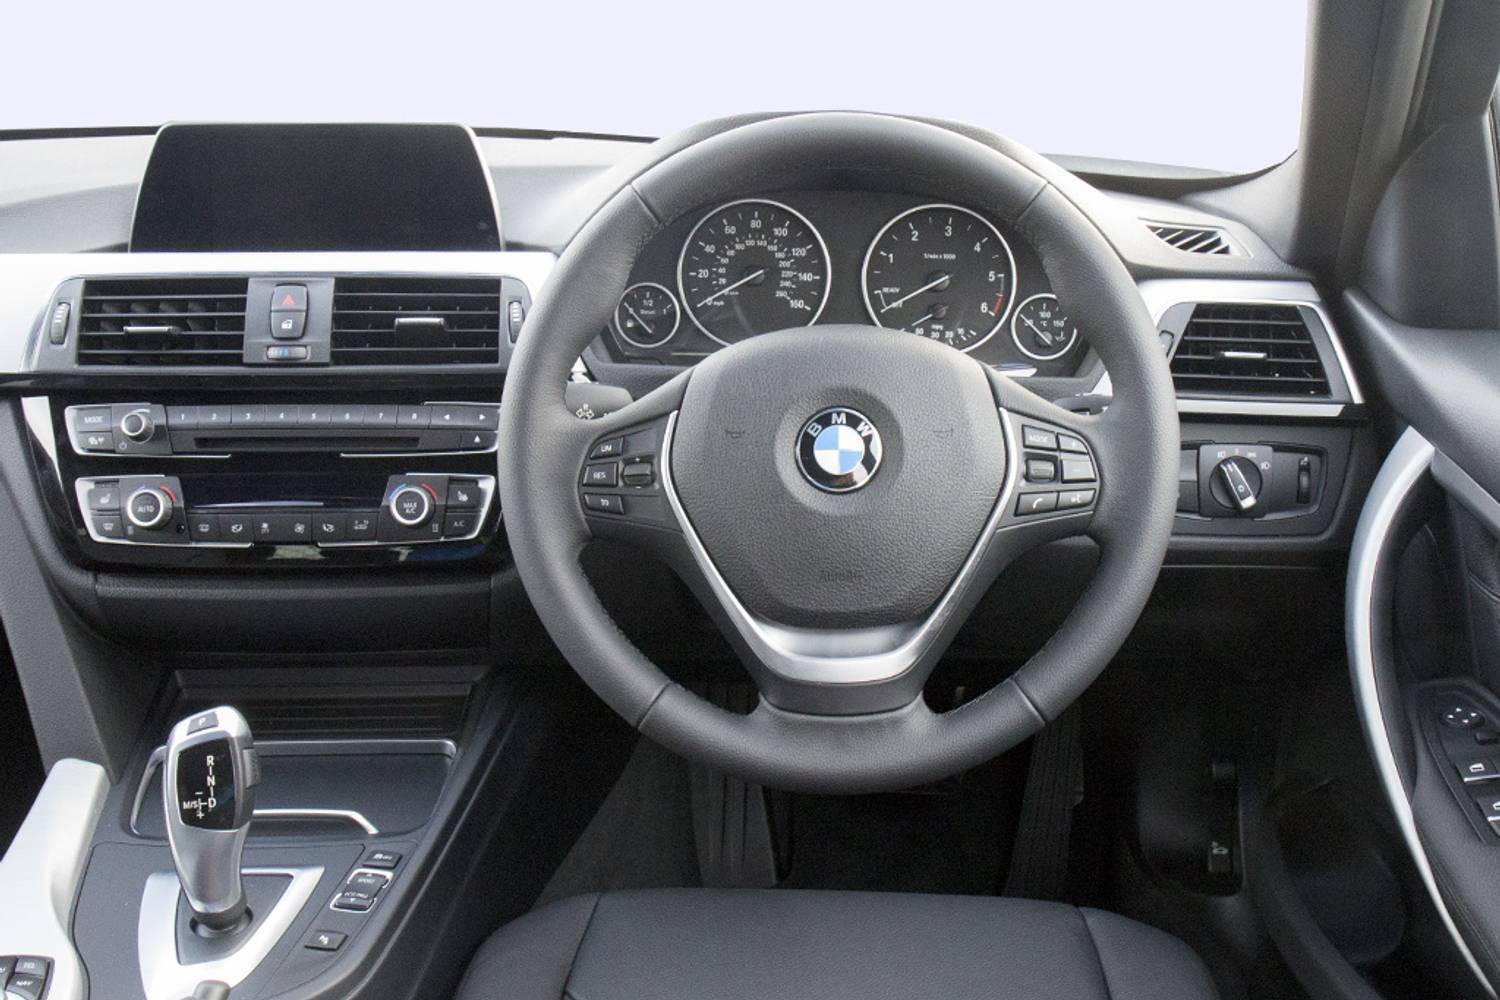 BMW 3 Series Touring 5dr interior